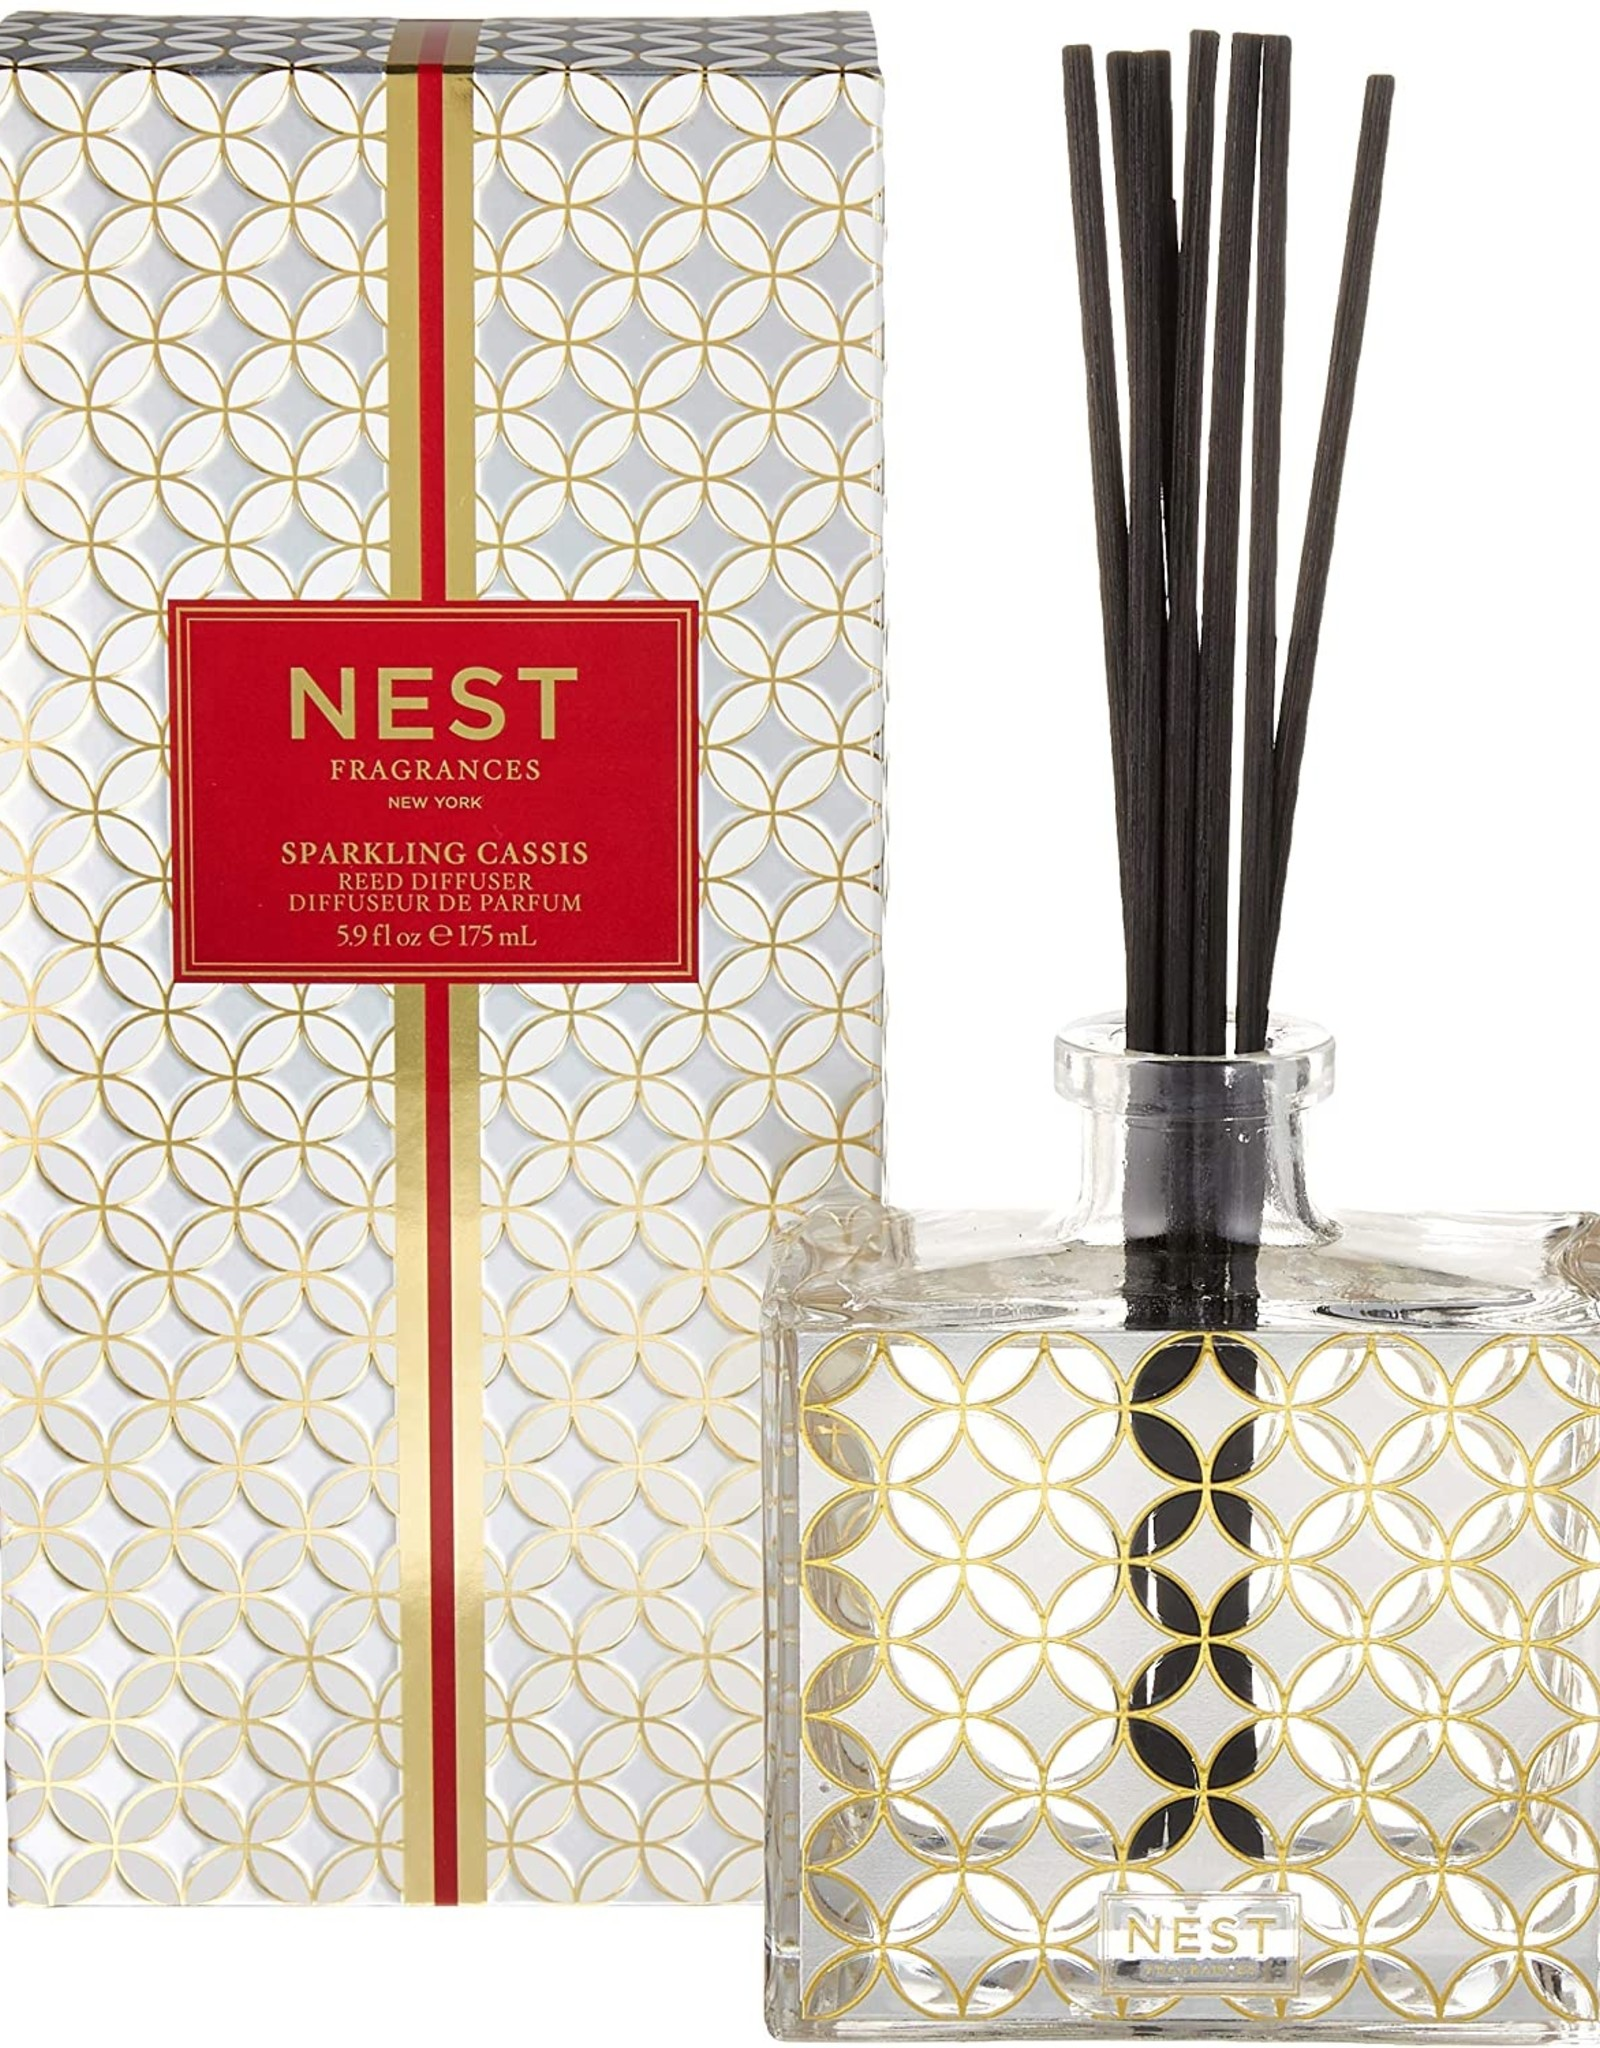 NF-NY Sparkling Cassis Diffuser